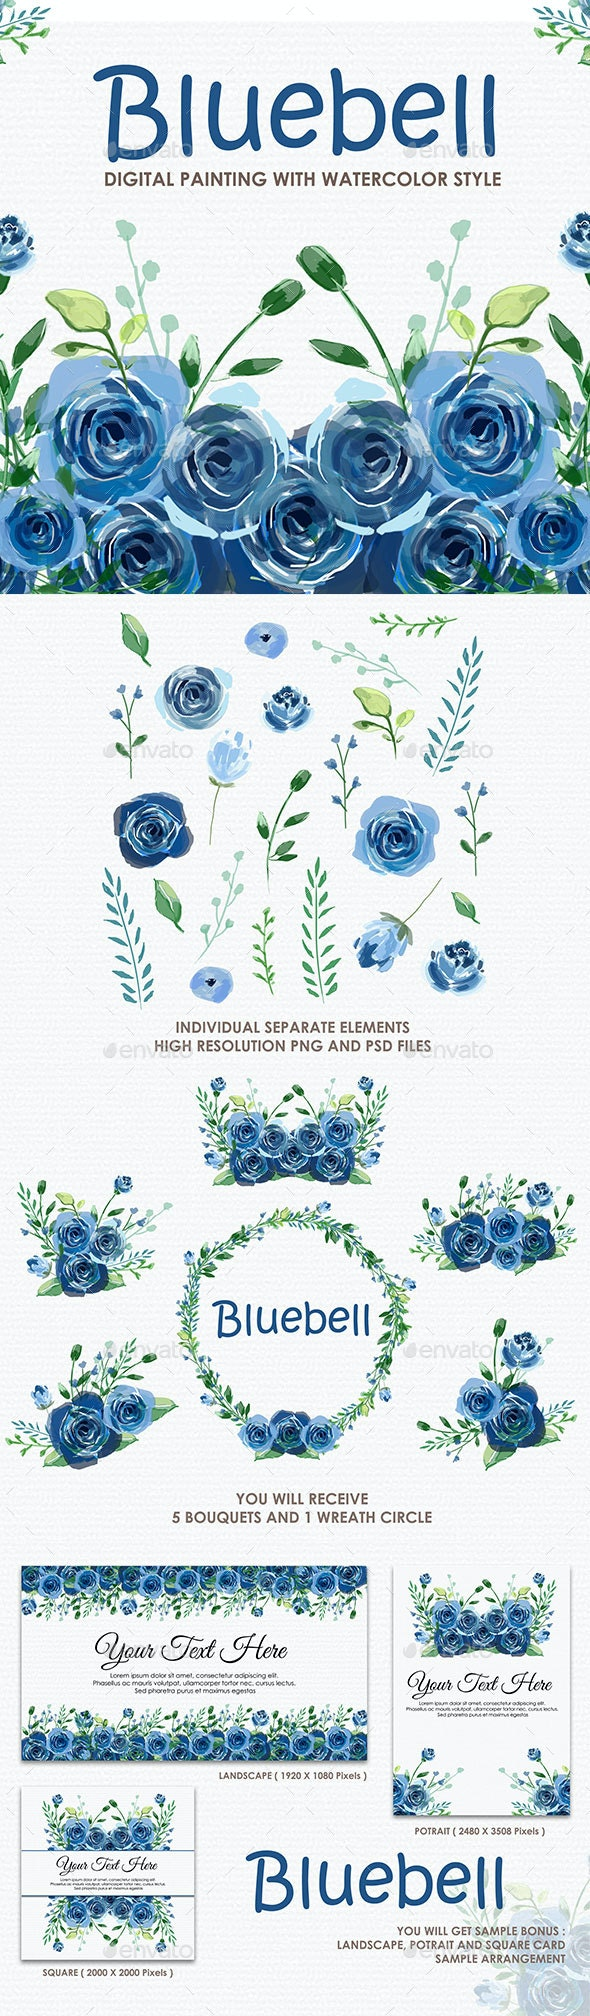 27 Best Decorative Element Graphics & Template Vectors - GraphicRiver for September 2020